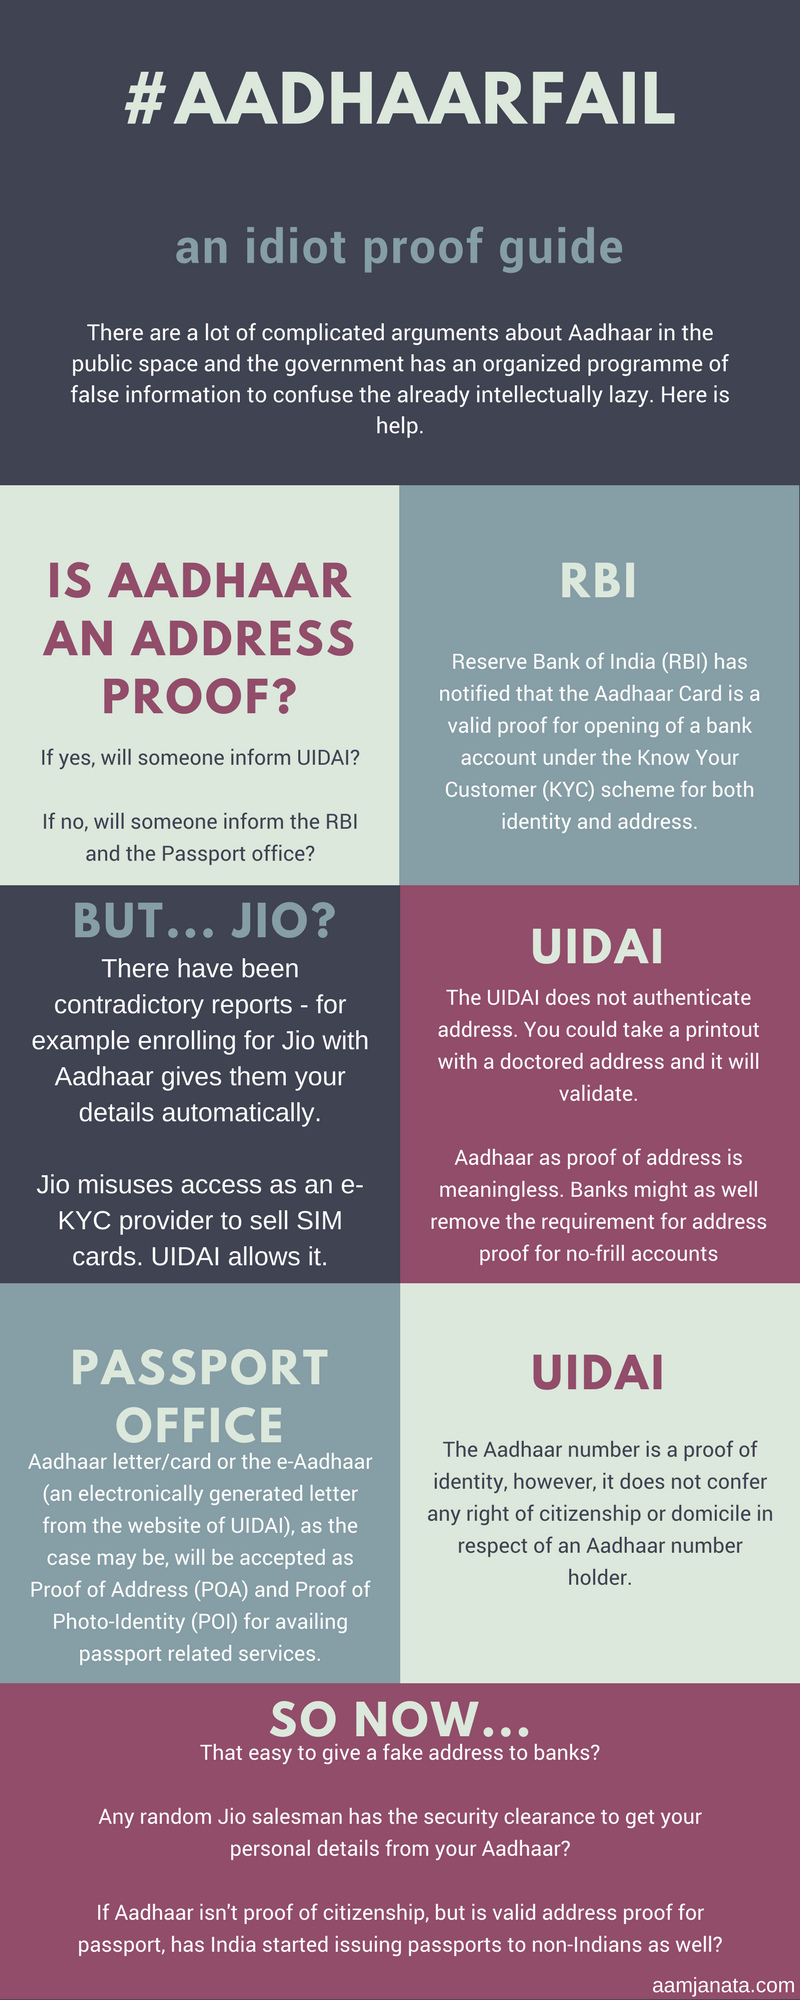 Aadhaar card and security risks